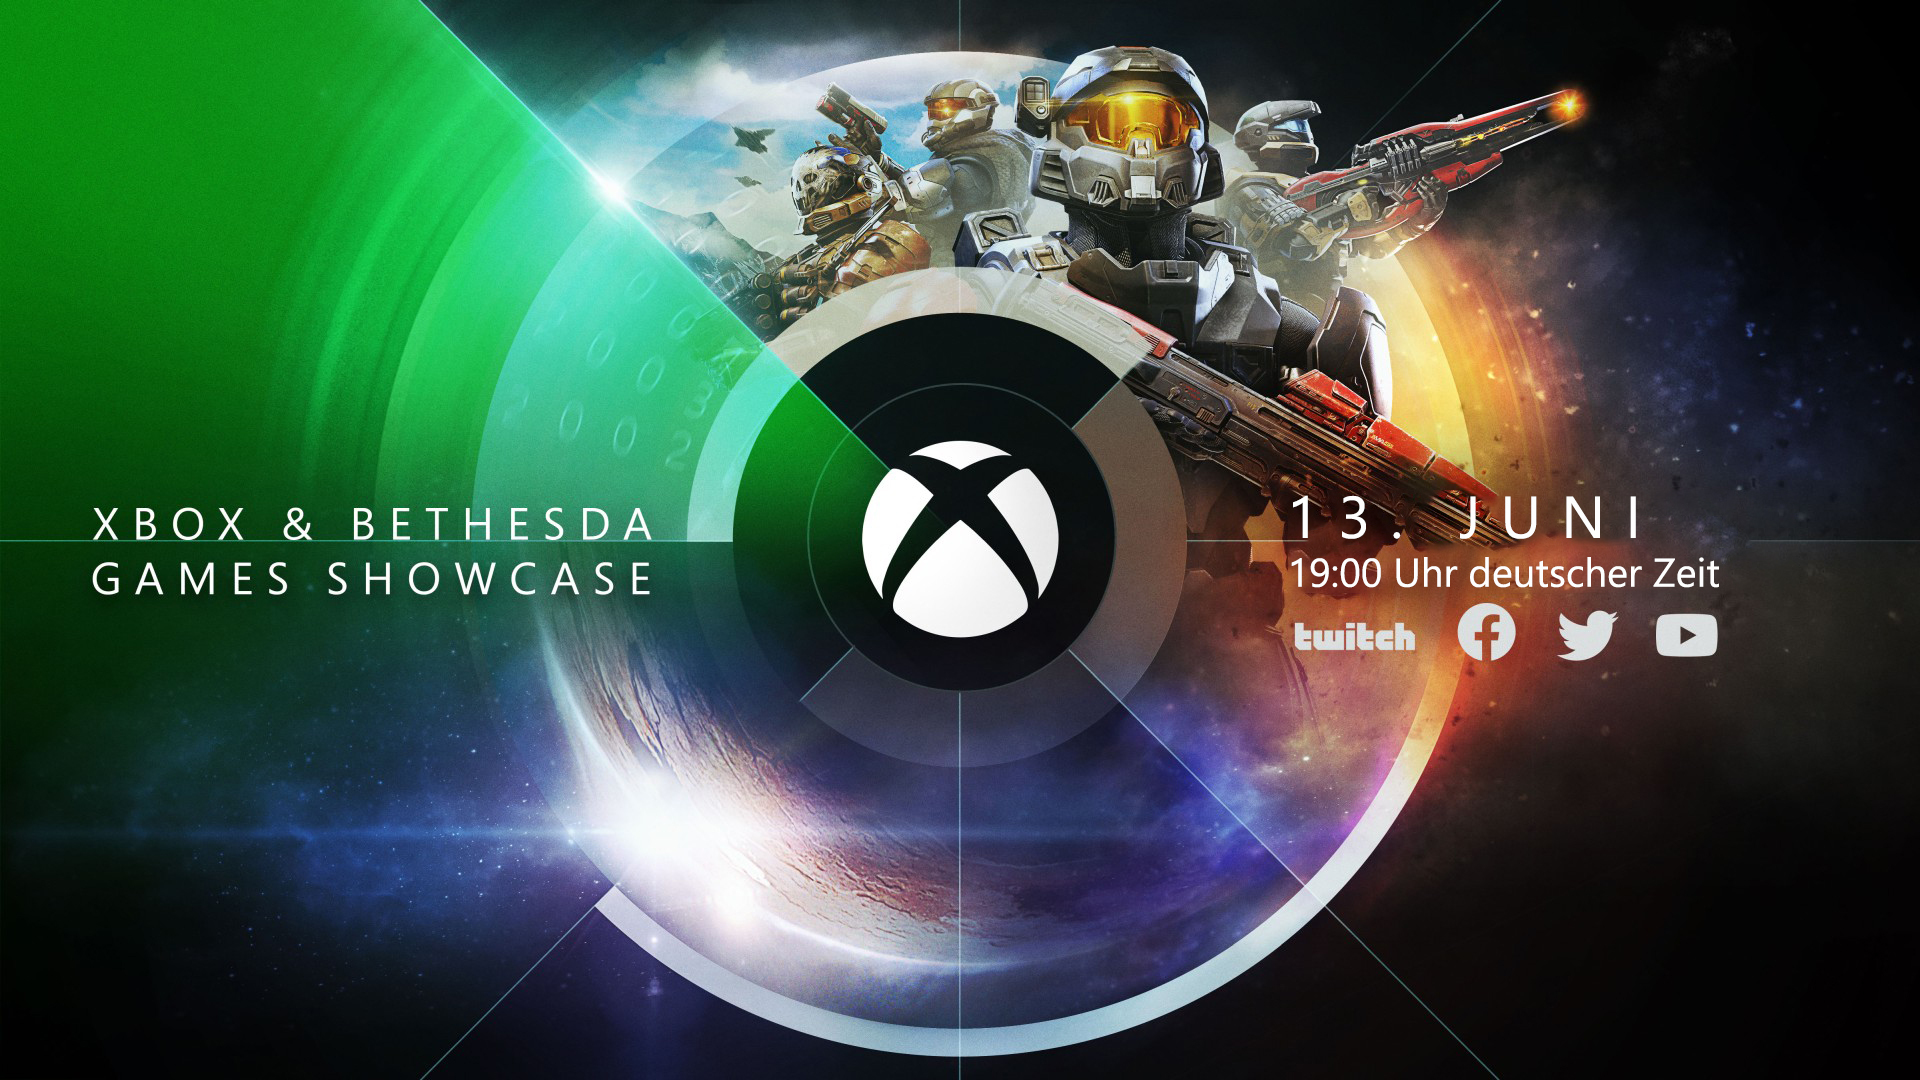 Xbox Bethesda Showcase: All new games and trailers from the E3 show